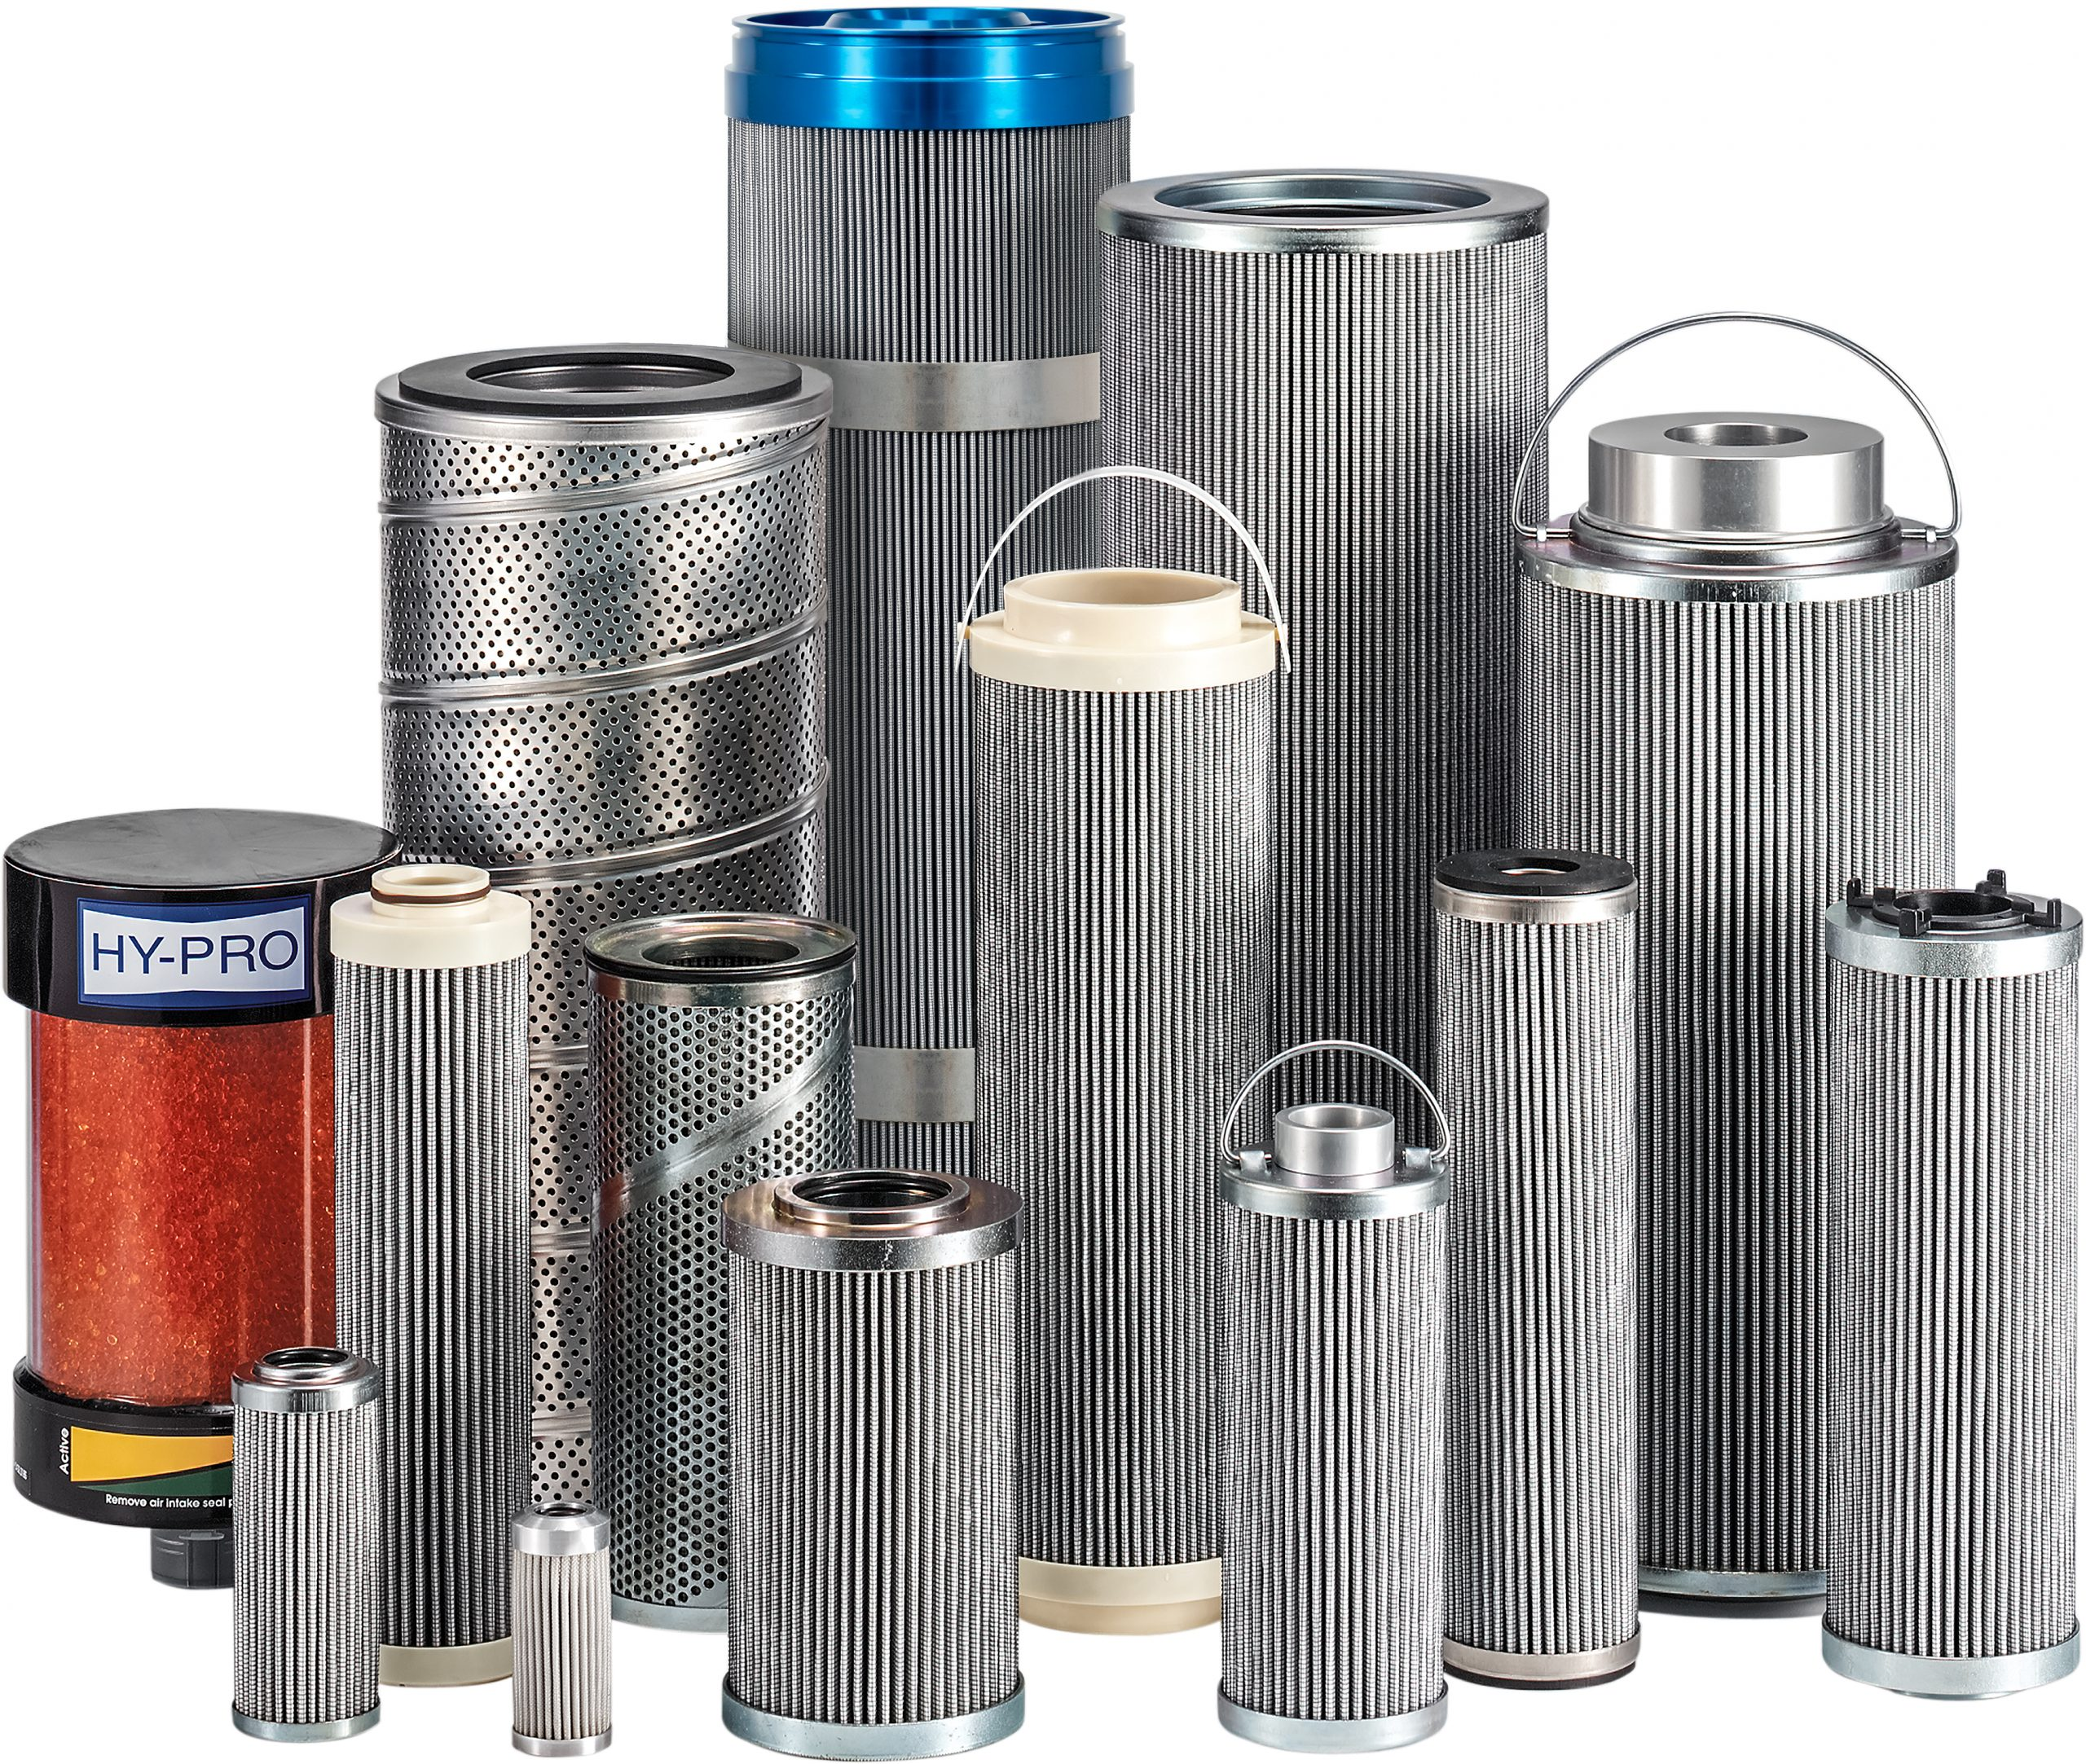 Hypro Filters